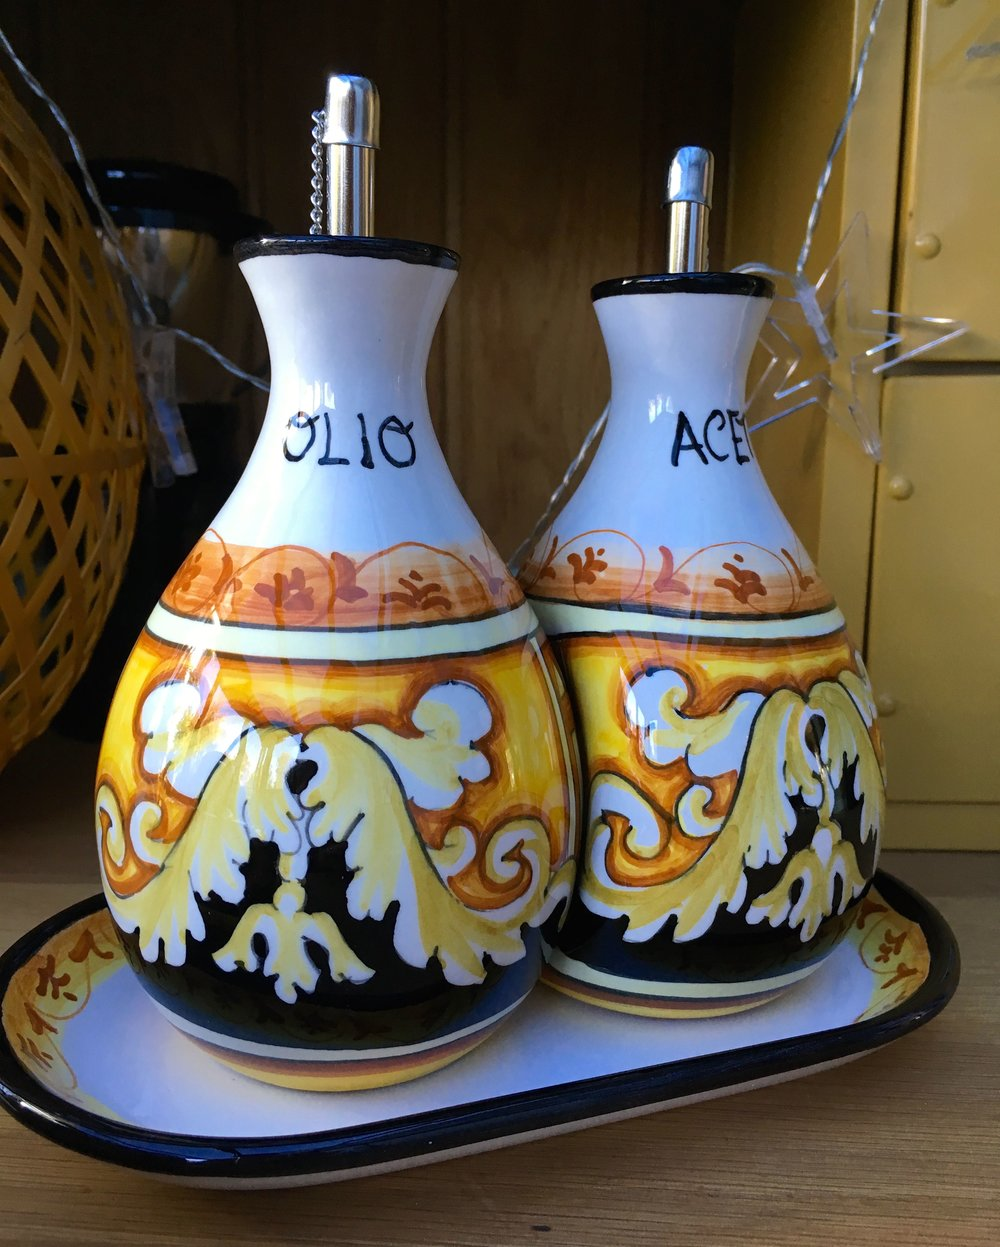 the ceramic oil and vinegar bottles